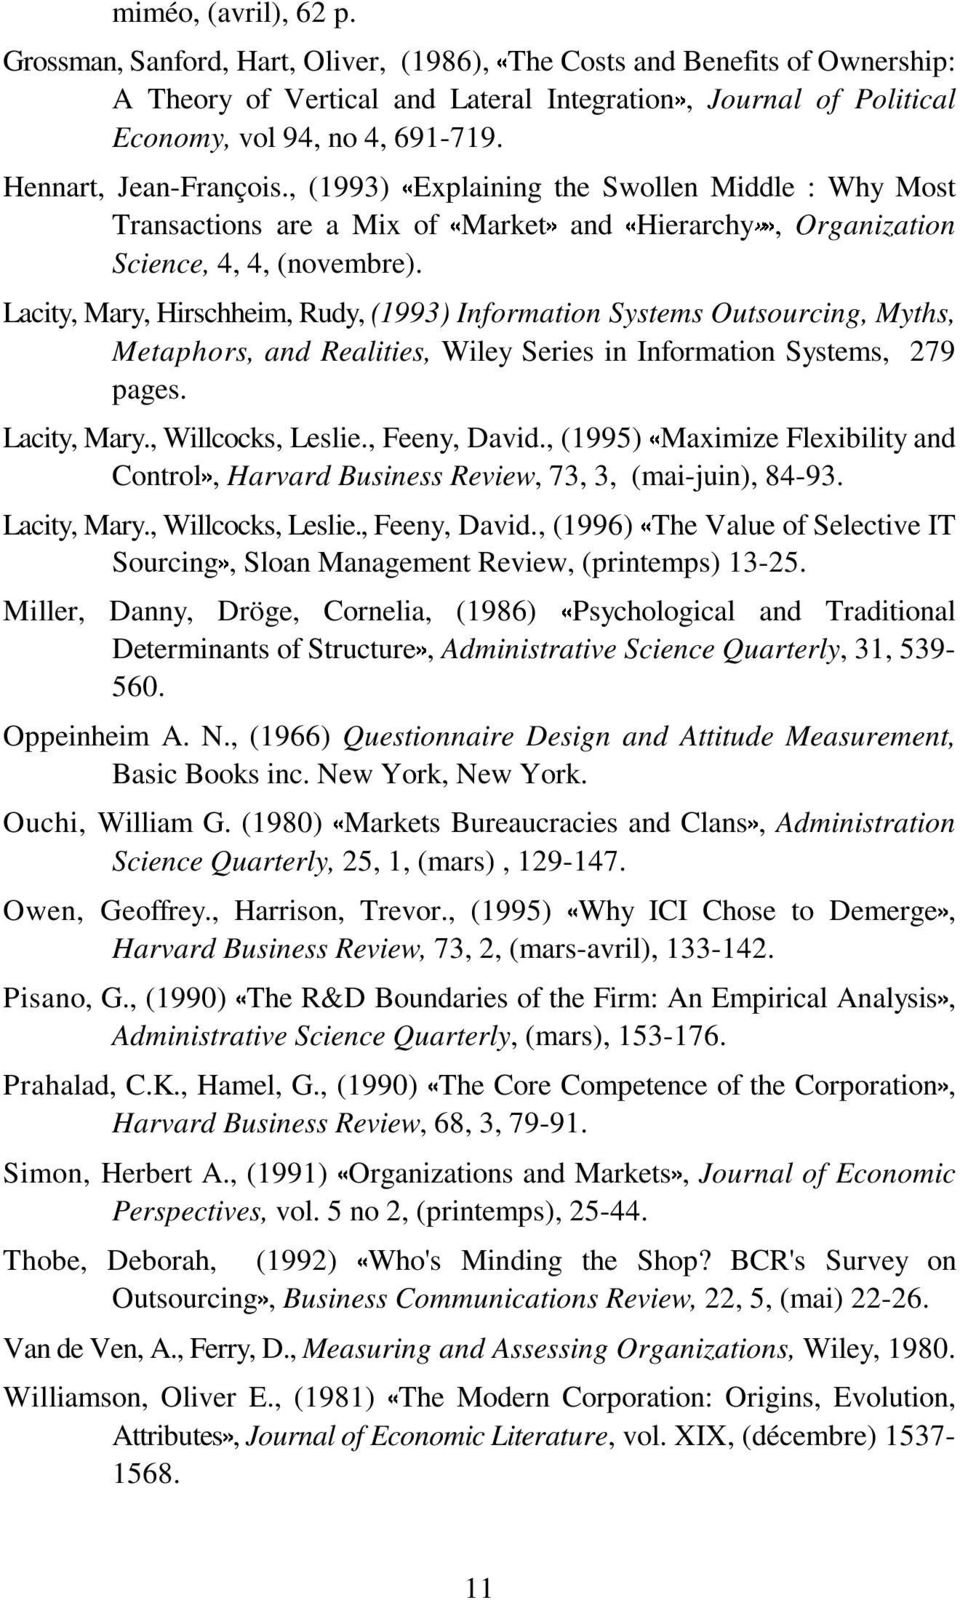 Lacity, Mary, Hirschheim, Rudy, (1993) Information Systems Outsourcing, Myths, Metaphors, and Realities, Wiley Series in Information Systems, 279 pages. Lacity, Mary., Willcocks, Leslie.